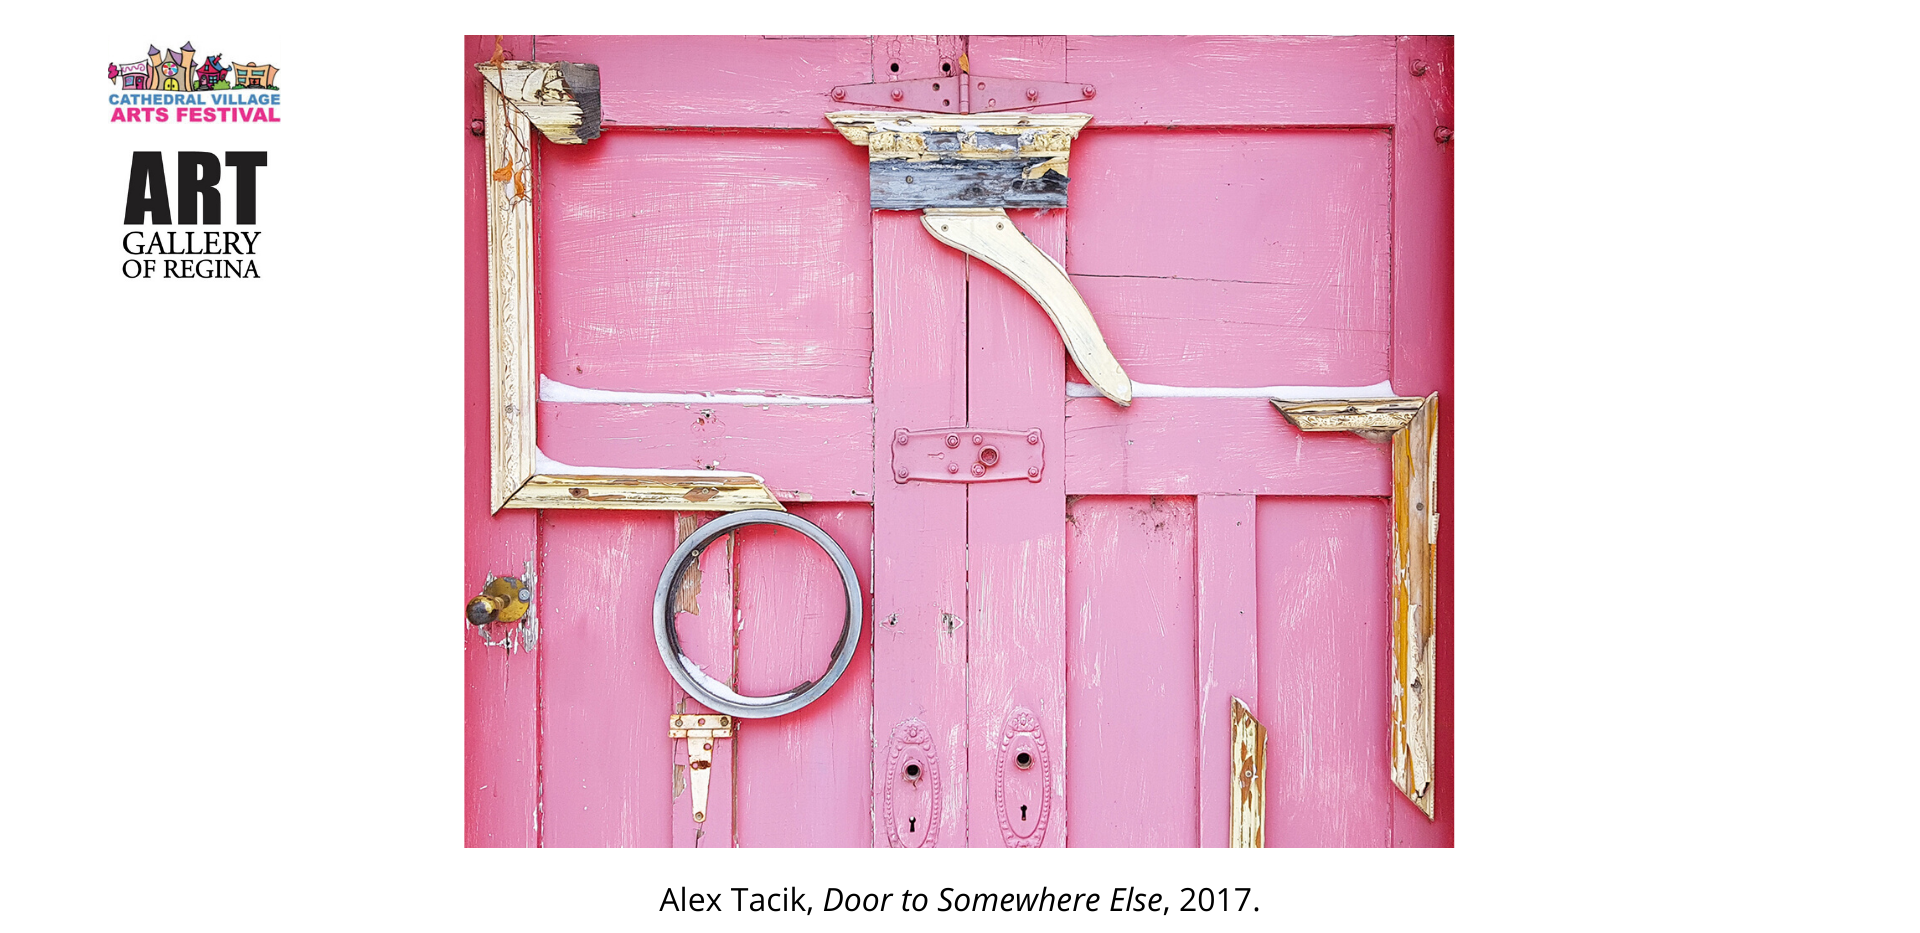 Alex Tacik, Door to Somewhere Else, 2017.